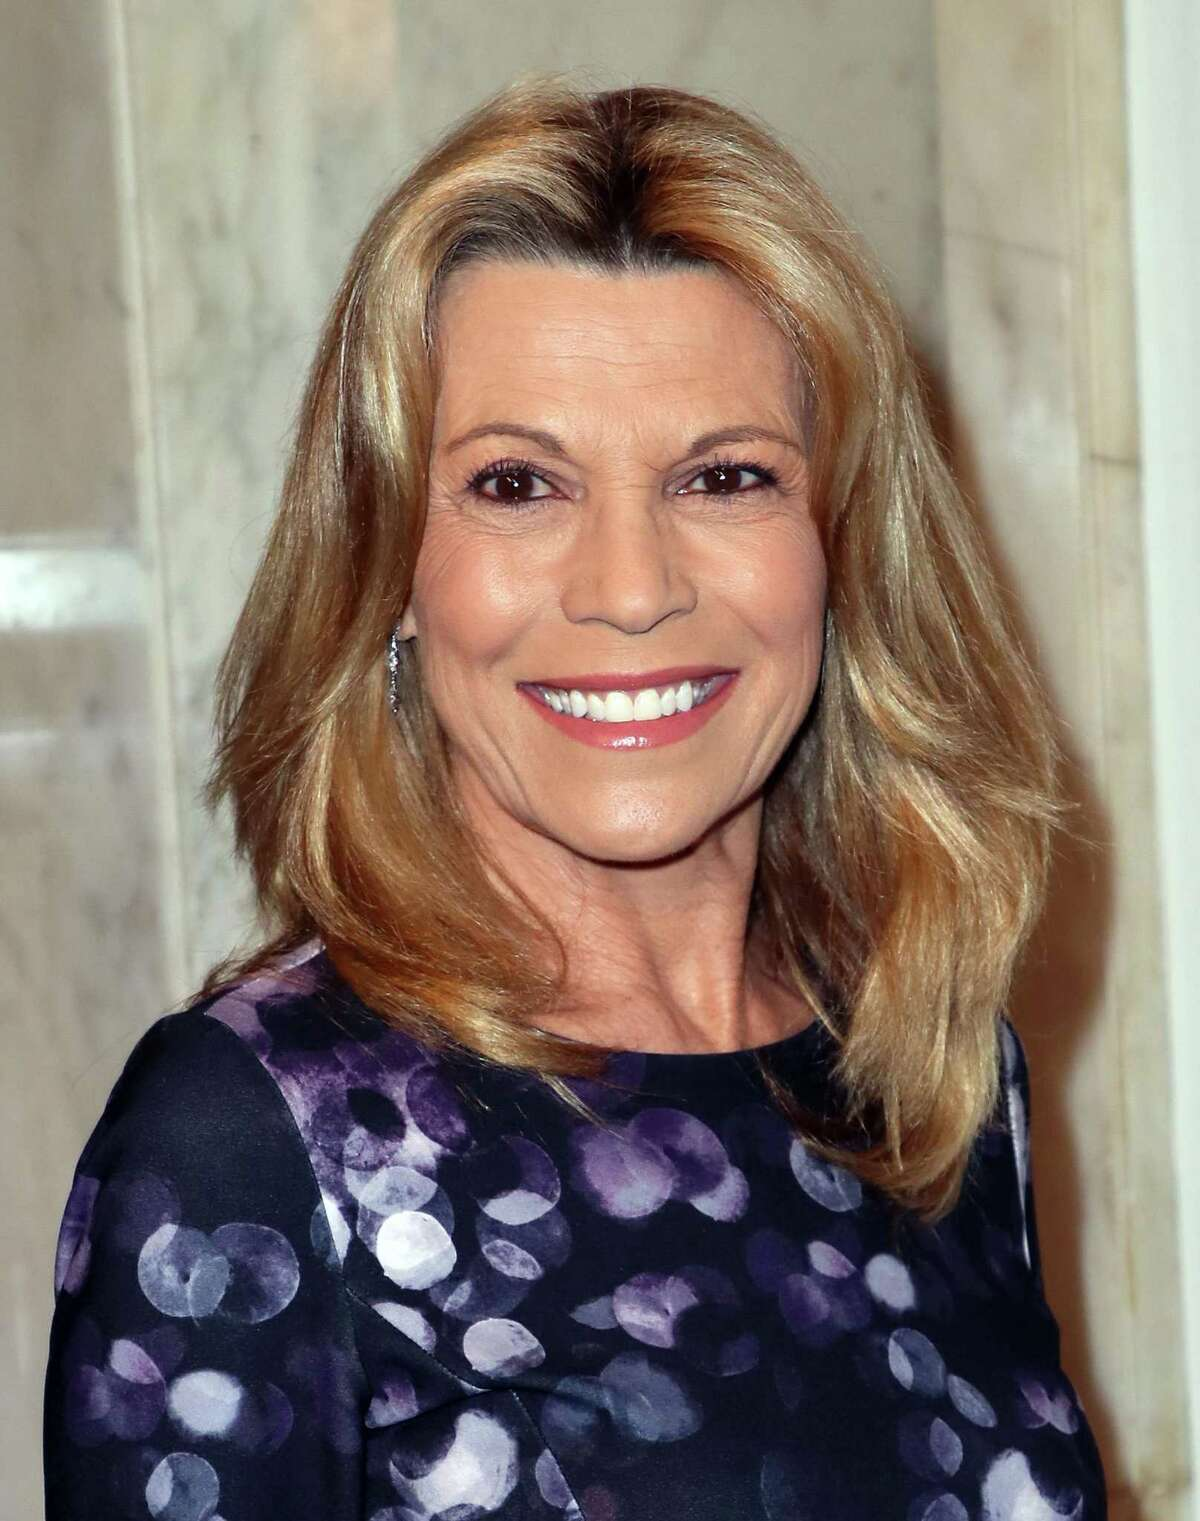 Vanna White attends the Women's Guild Cedars-Sinai annual luncheon at the Regent Beverly Wilshire Hotel on Nov. 06, 2019 in Beverly Hills, Calif.